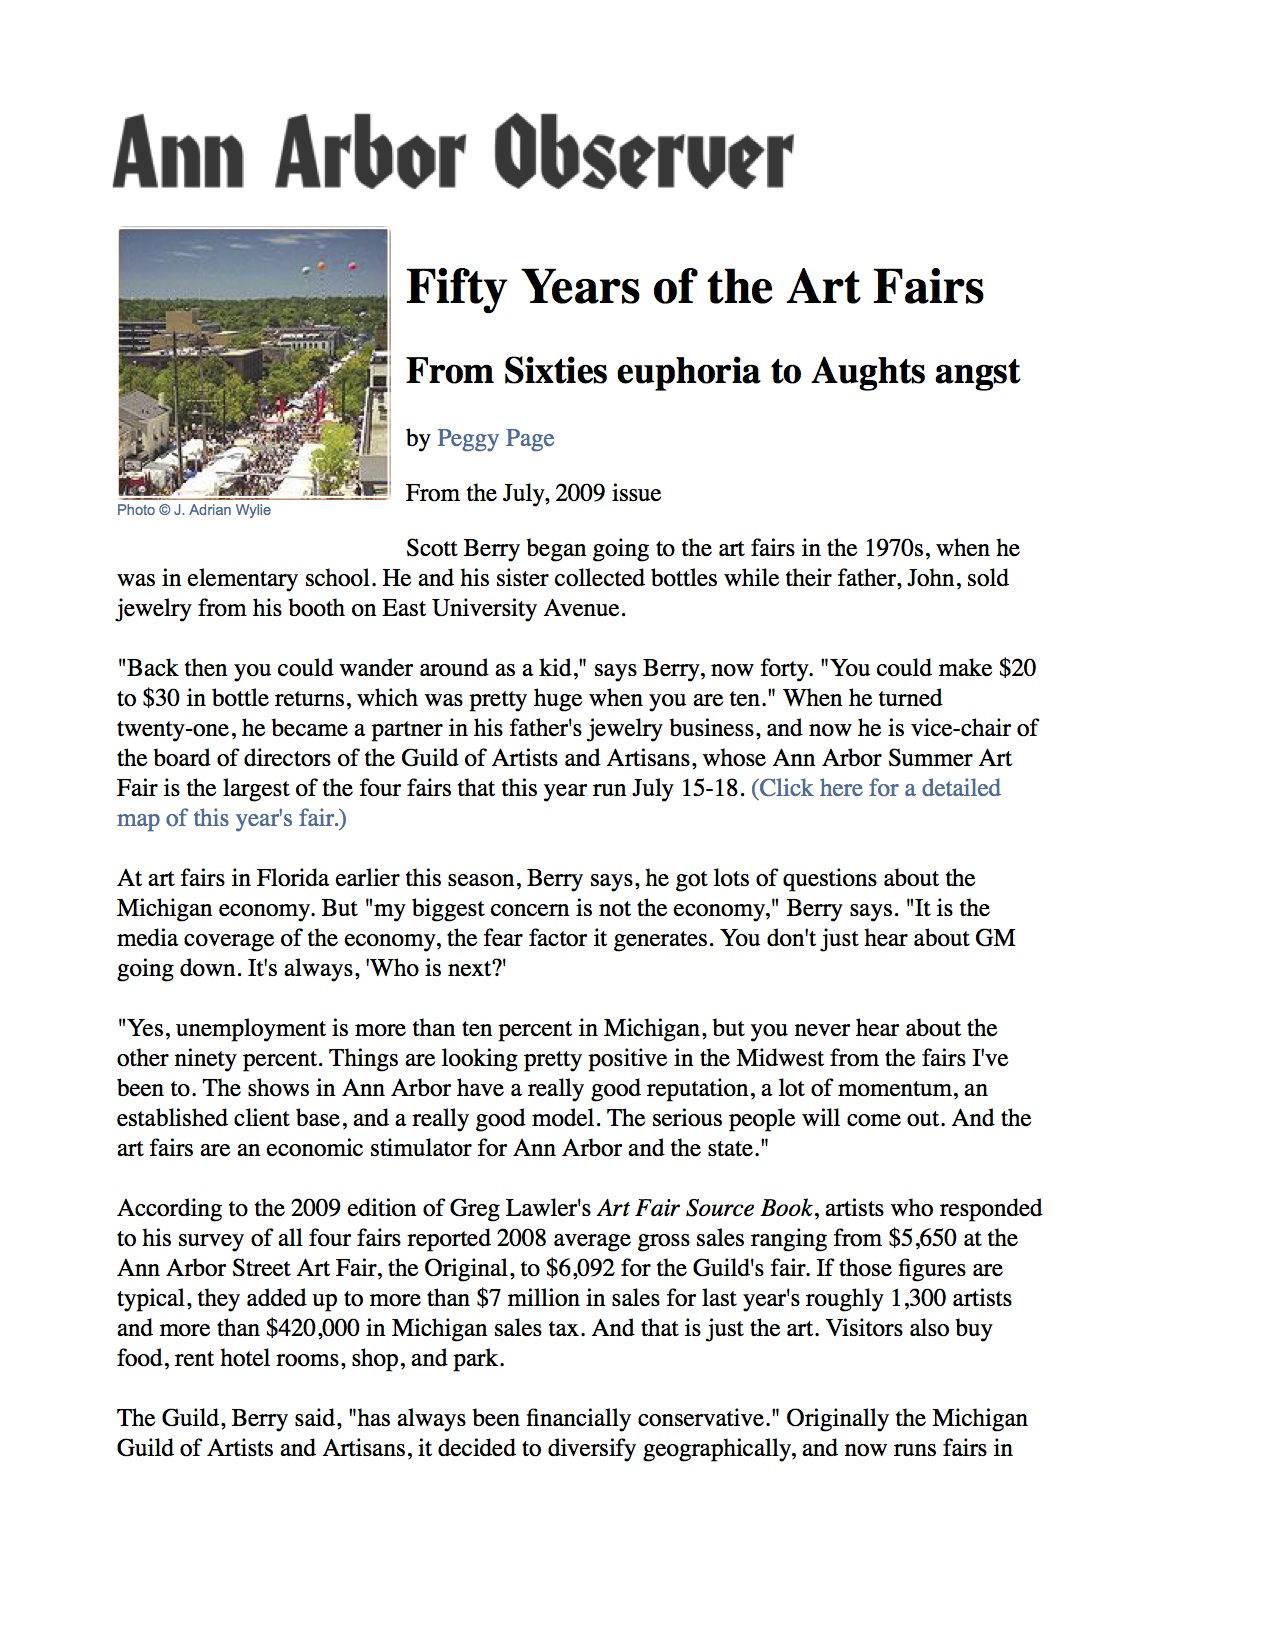 "Page, Peggy. ""Fifty Years of the Art Fairs From Sixties euphoria to Aughts angst."" Ann Arbor Observer 14 July 2009. Print."